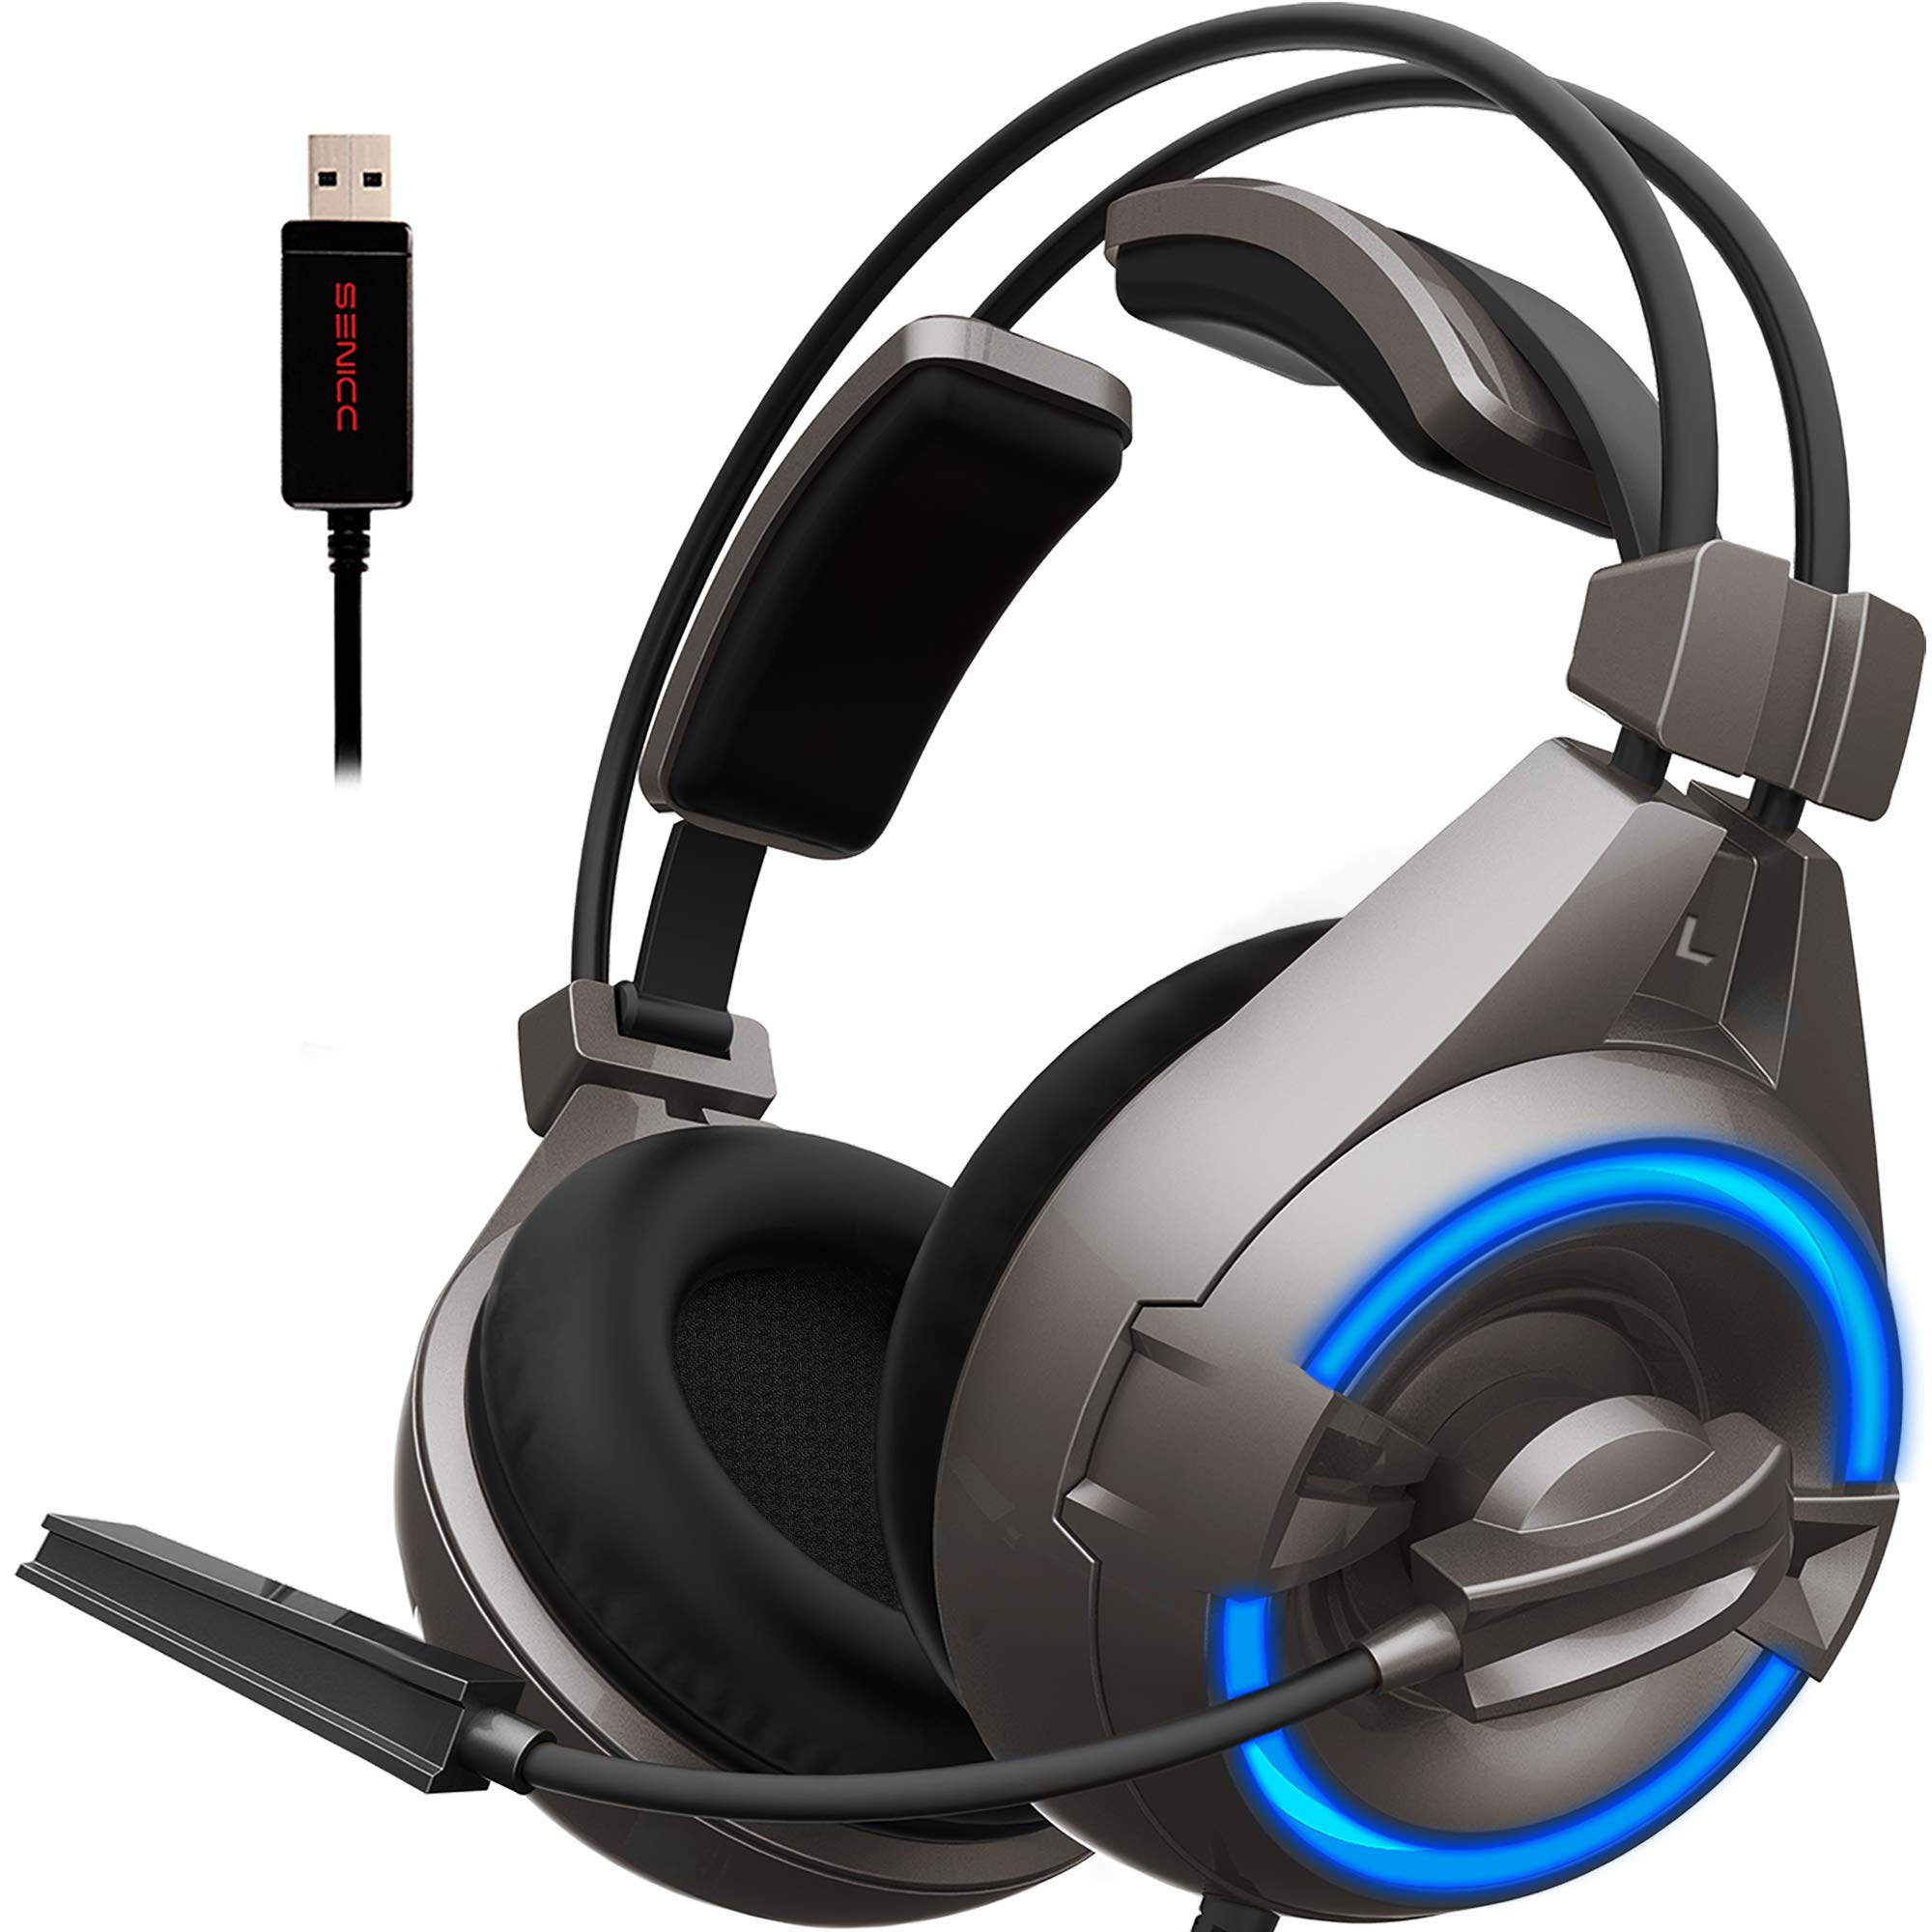 SENICC A6 Stereo Gaming Headset with Microphone USB LED Light, Flying Wing Lightweight Design Over-Ear Noise Cancelling Surround Sound Headphones for PC, PS4 by Senicc